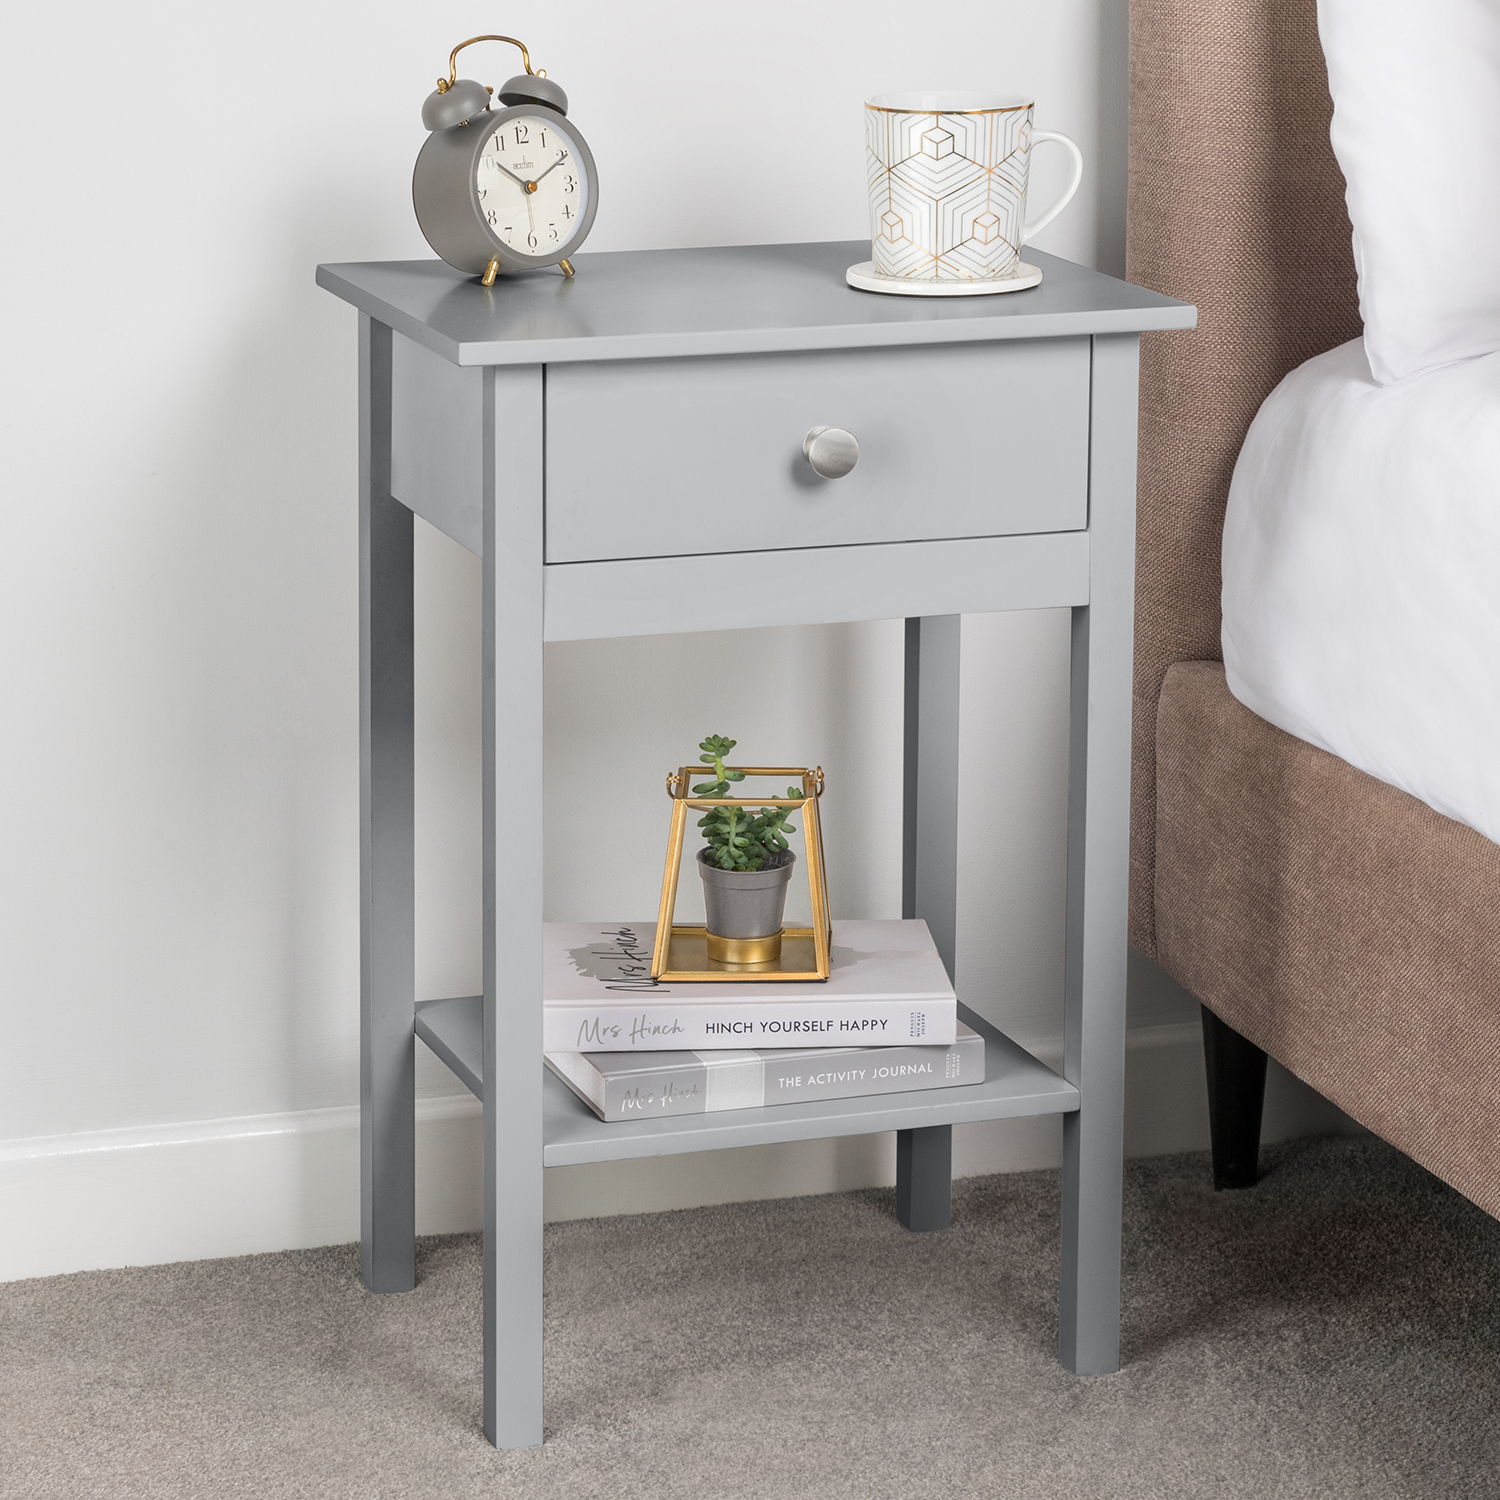 Image of Bedside Table With Shelf - Grey